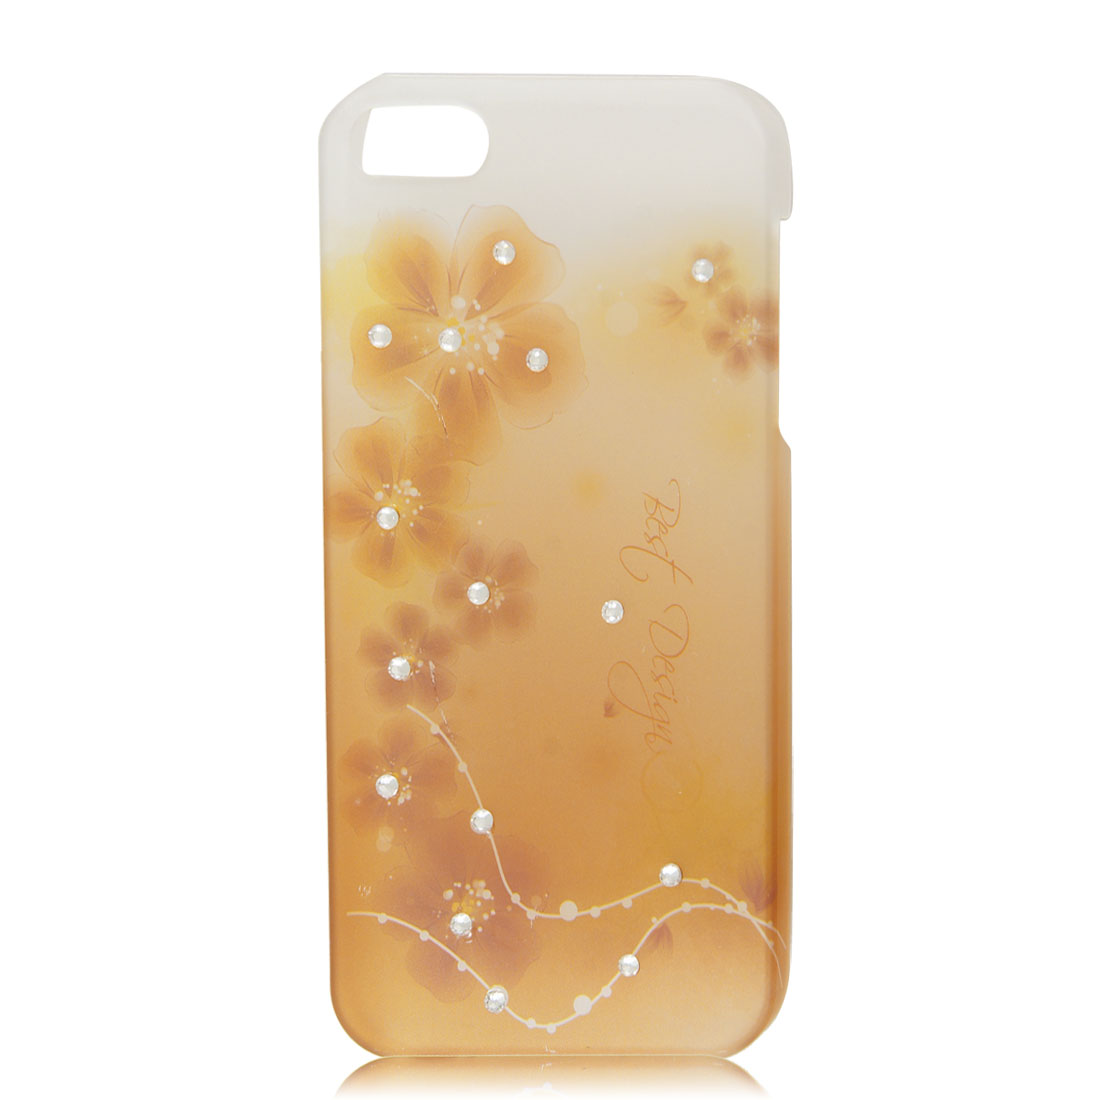 Clear Brown Flower Glitter Bling Rhinestone Hard Back Case Cover for iPhone 5 5G